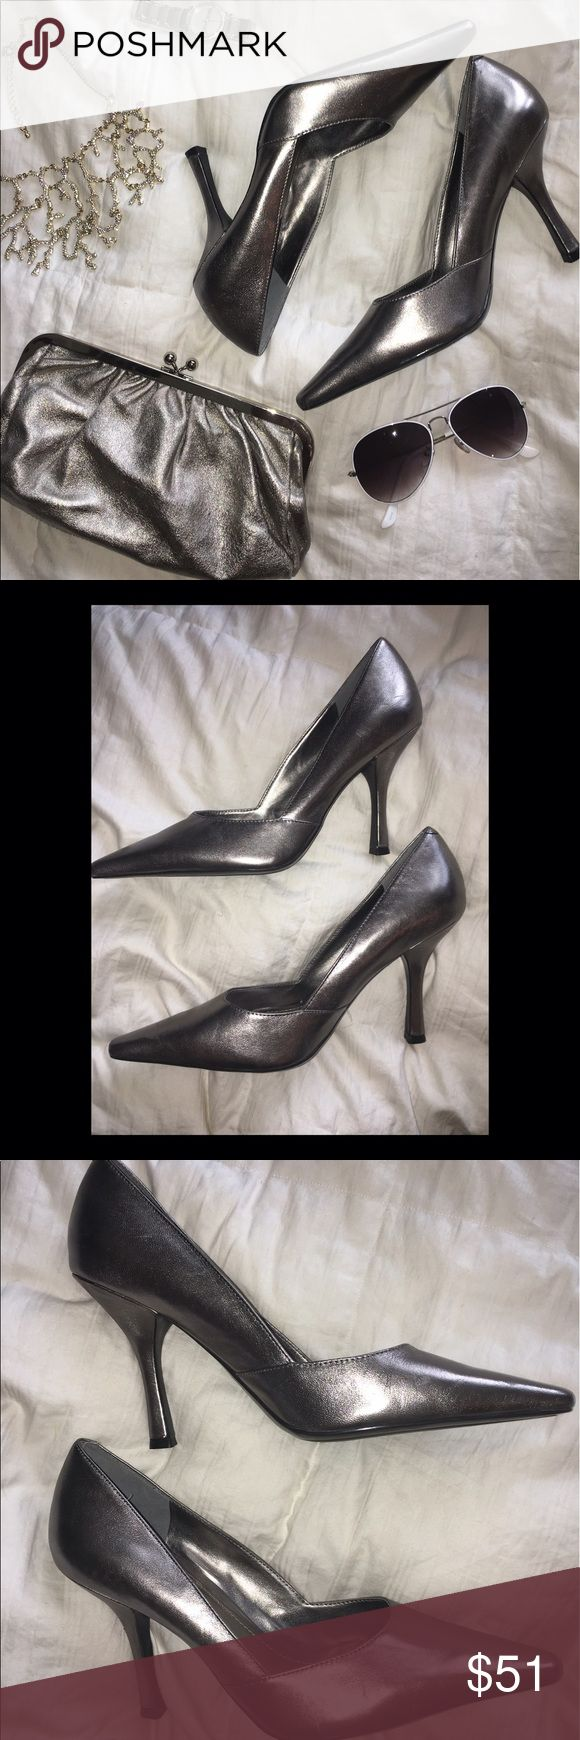 BCBGeneration Silver Grey High Heels These heels have never been worn. Close to perfect condition. They are a dark grey with a metallic effect that could be considered silver. They really are beautiful!! Pointed toe and stiletto heel. BCBGeneration Shoes Heels